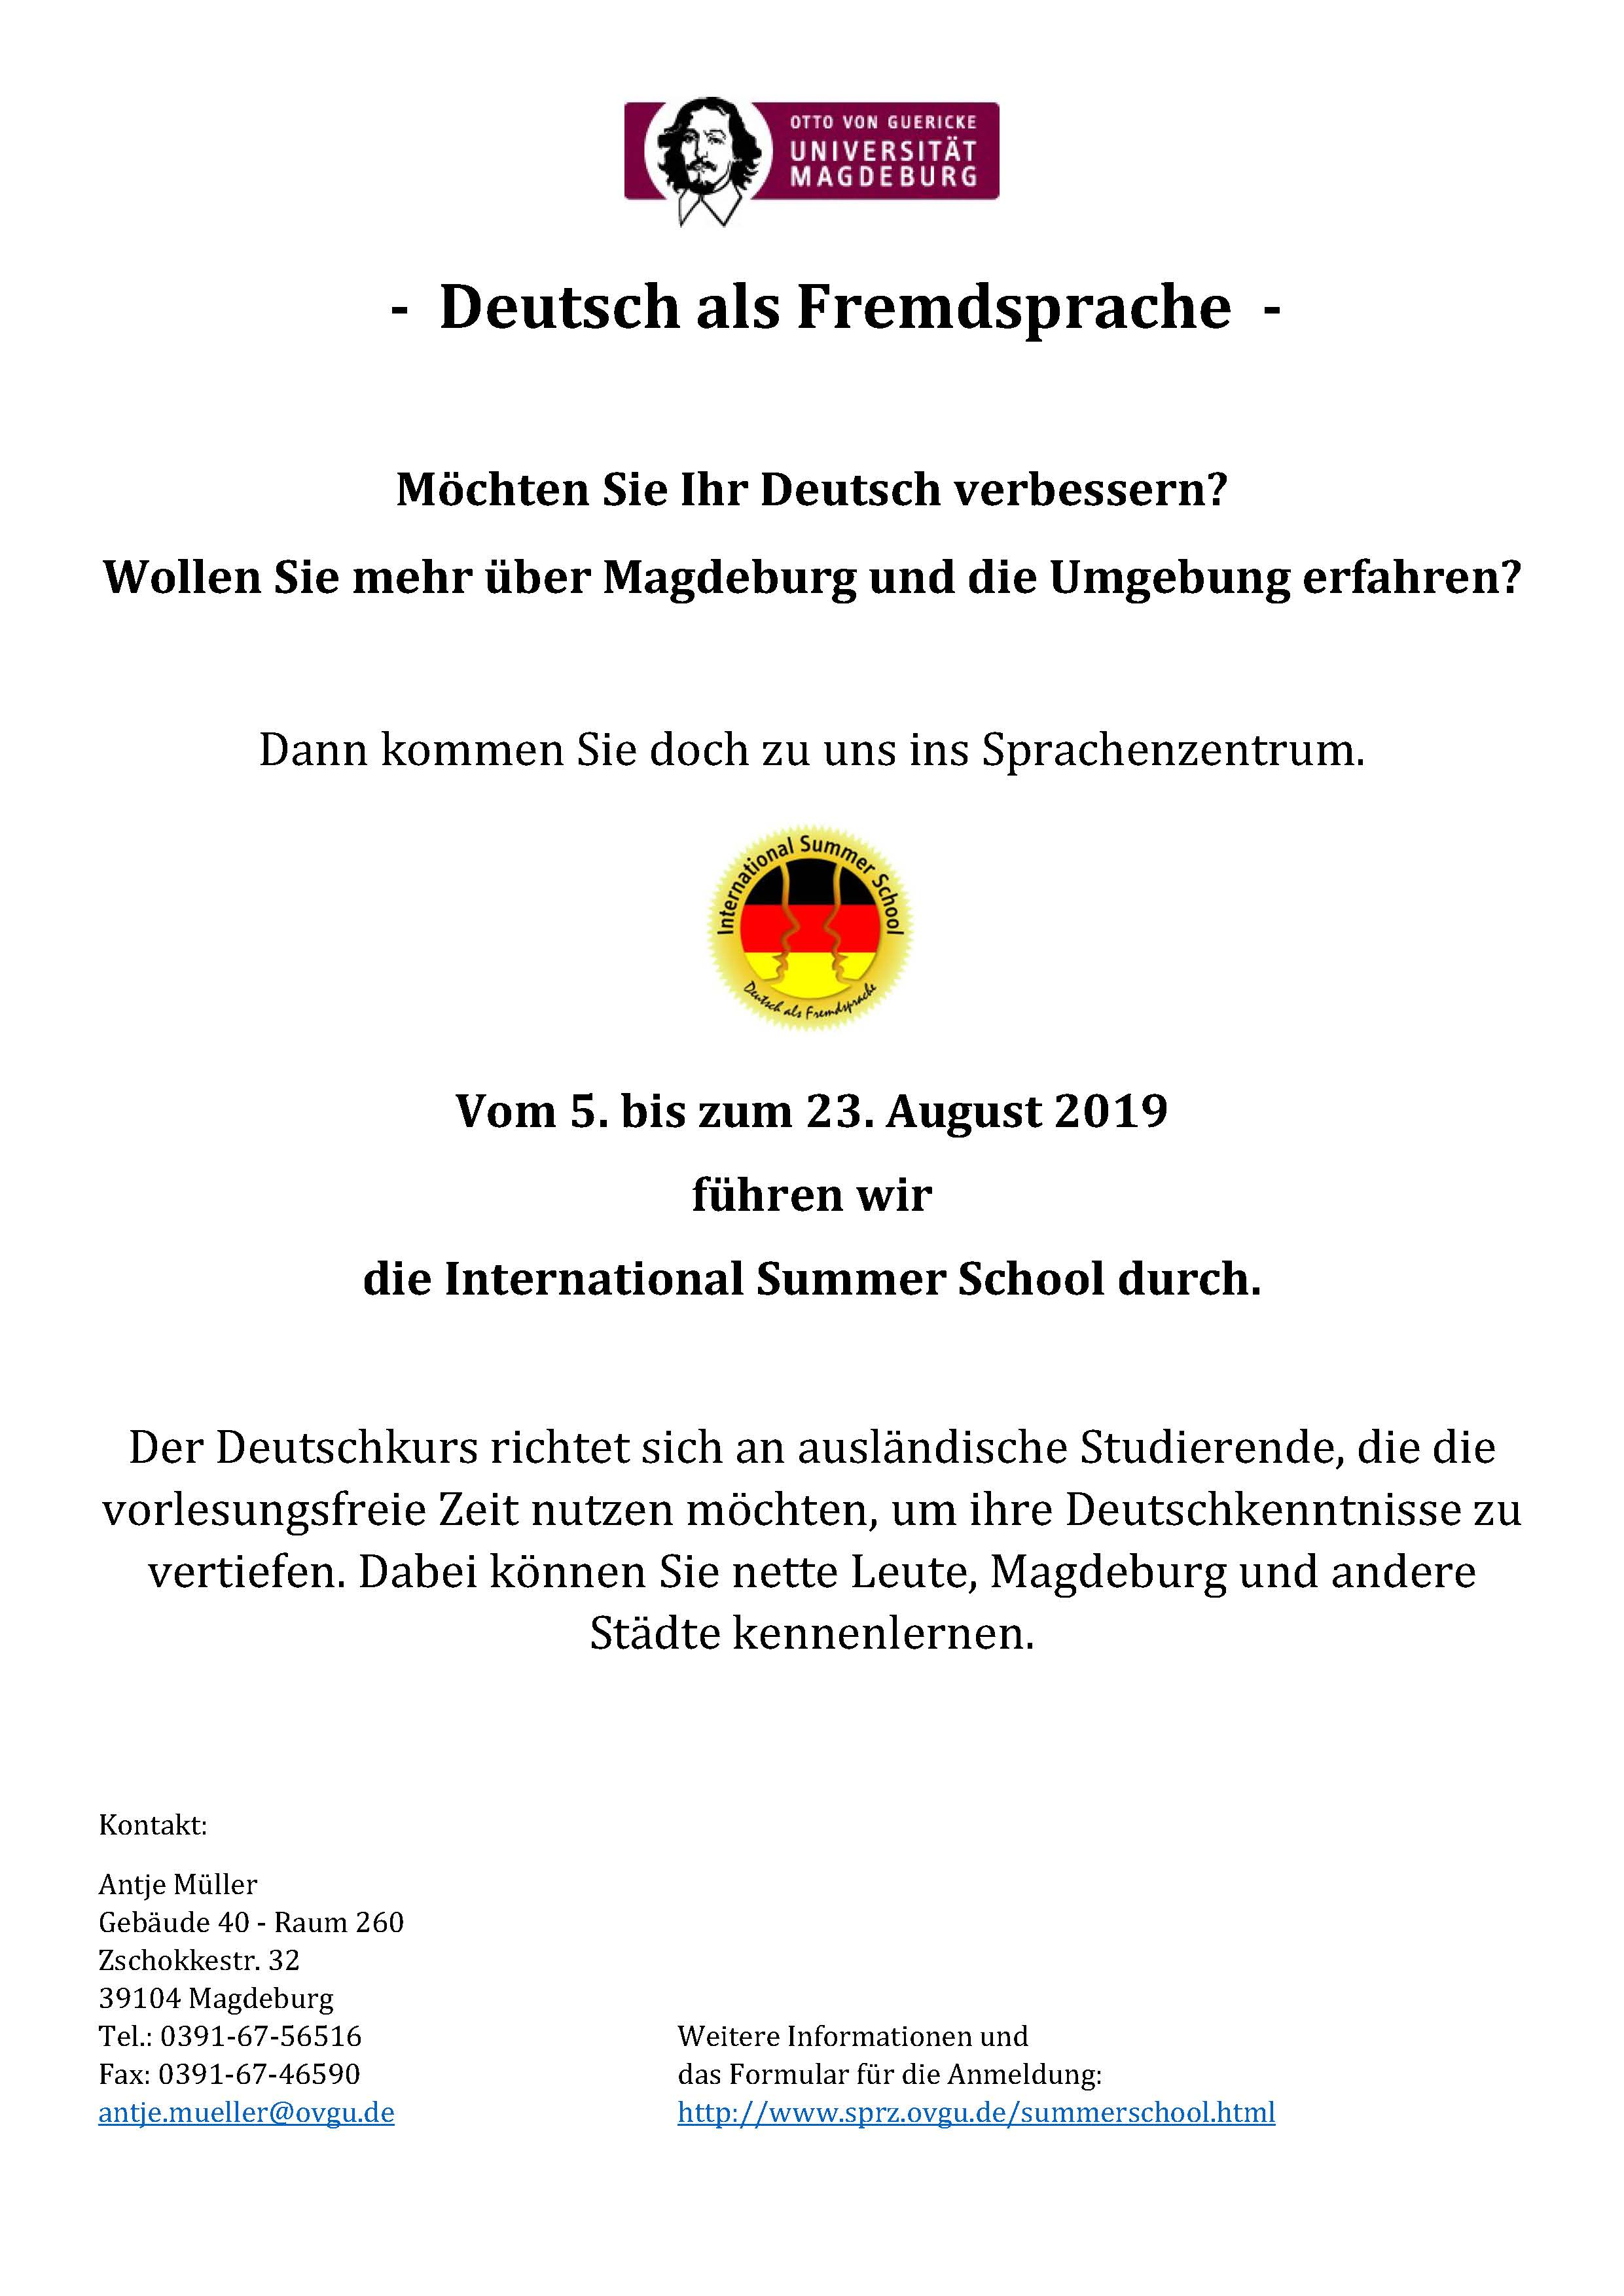 International German Summer School @ OVGU Language Center